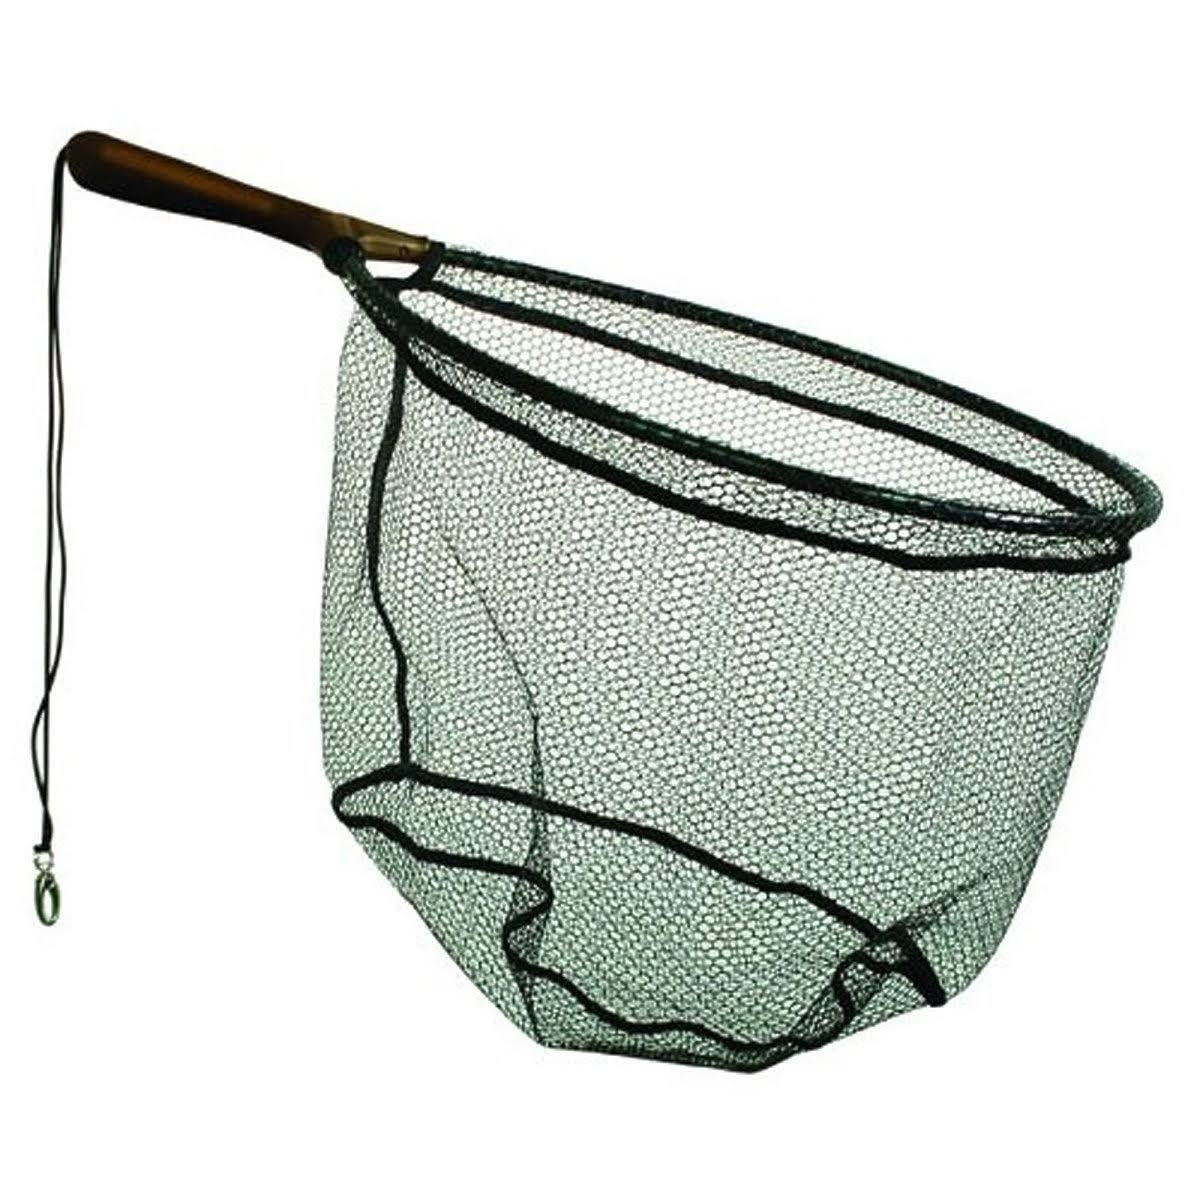 Frabill Trout Net 11 inch x 15 inch Rubber Handle